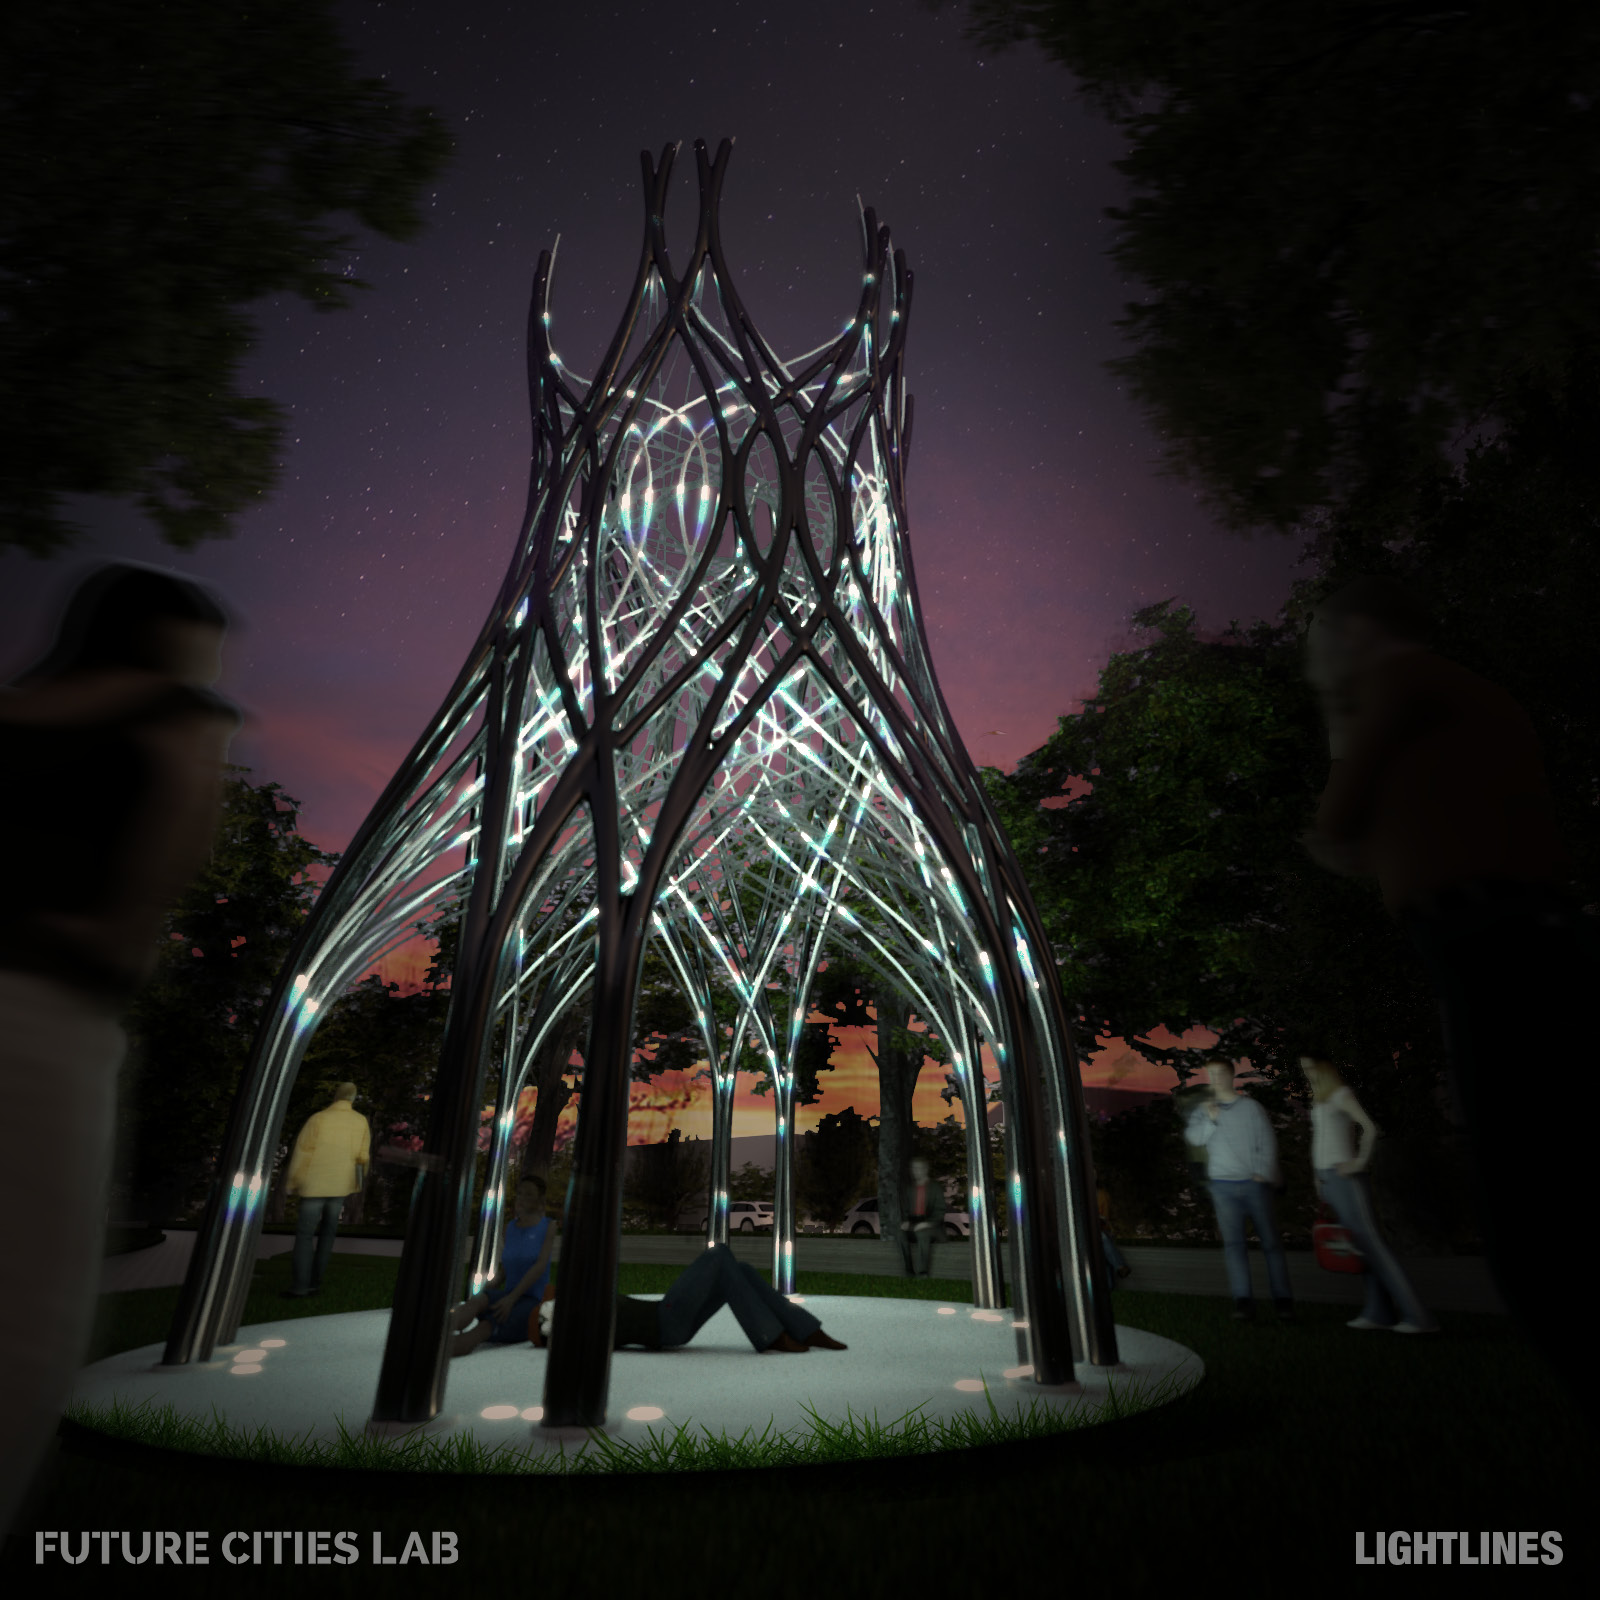 05_Lightlines_Future Cities Lab_Additional Concept Images.jpg